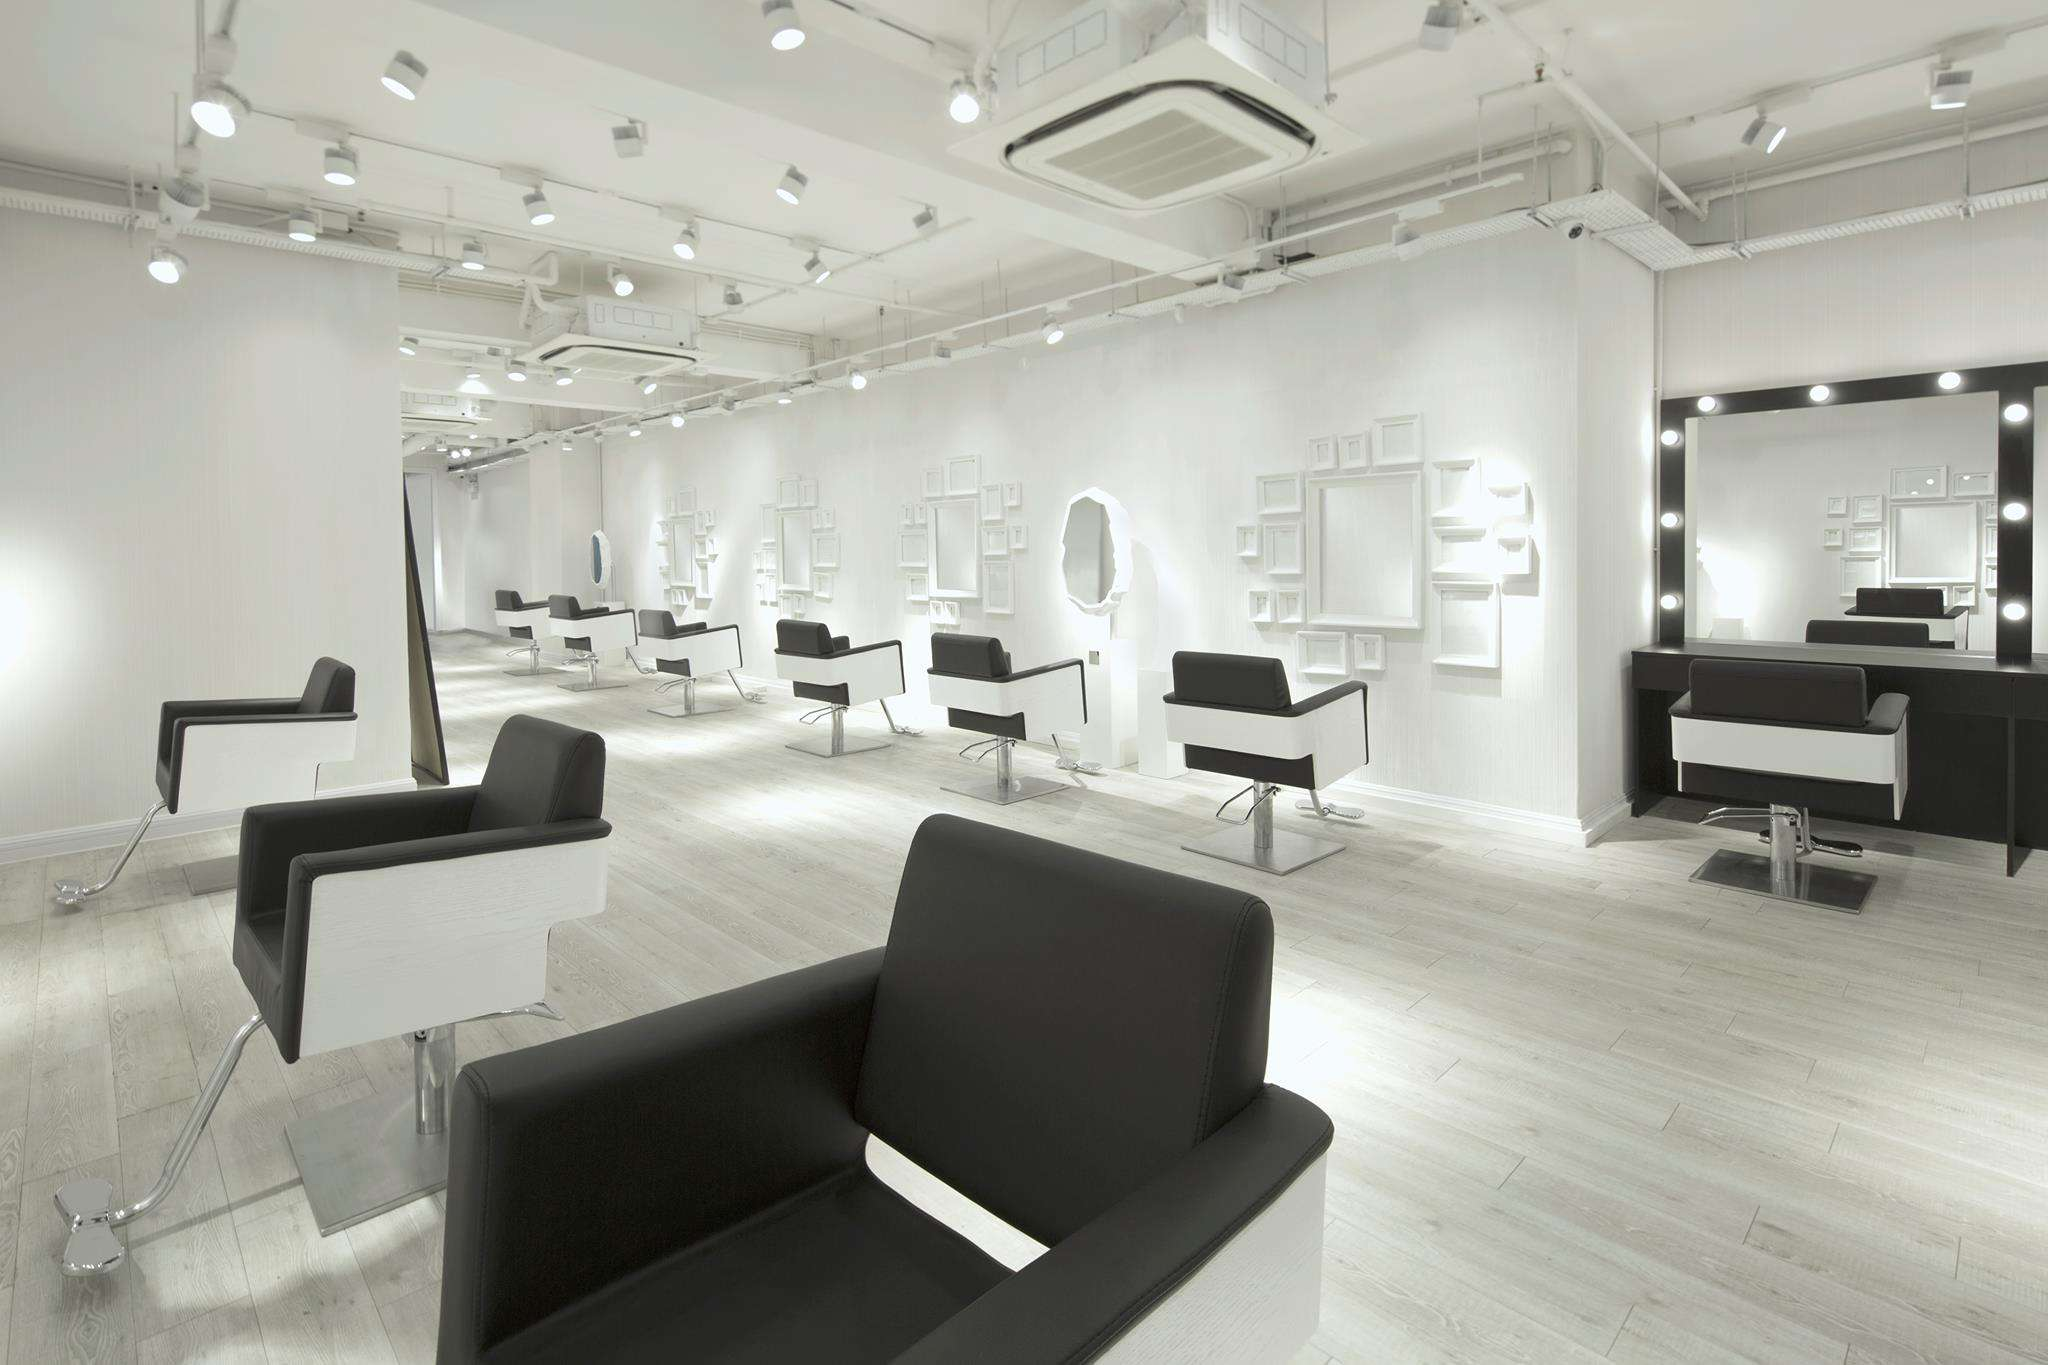 All white hair salon with black and white chairs